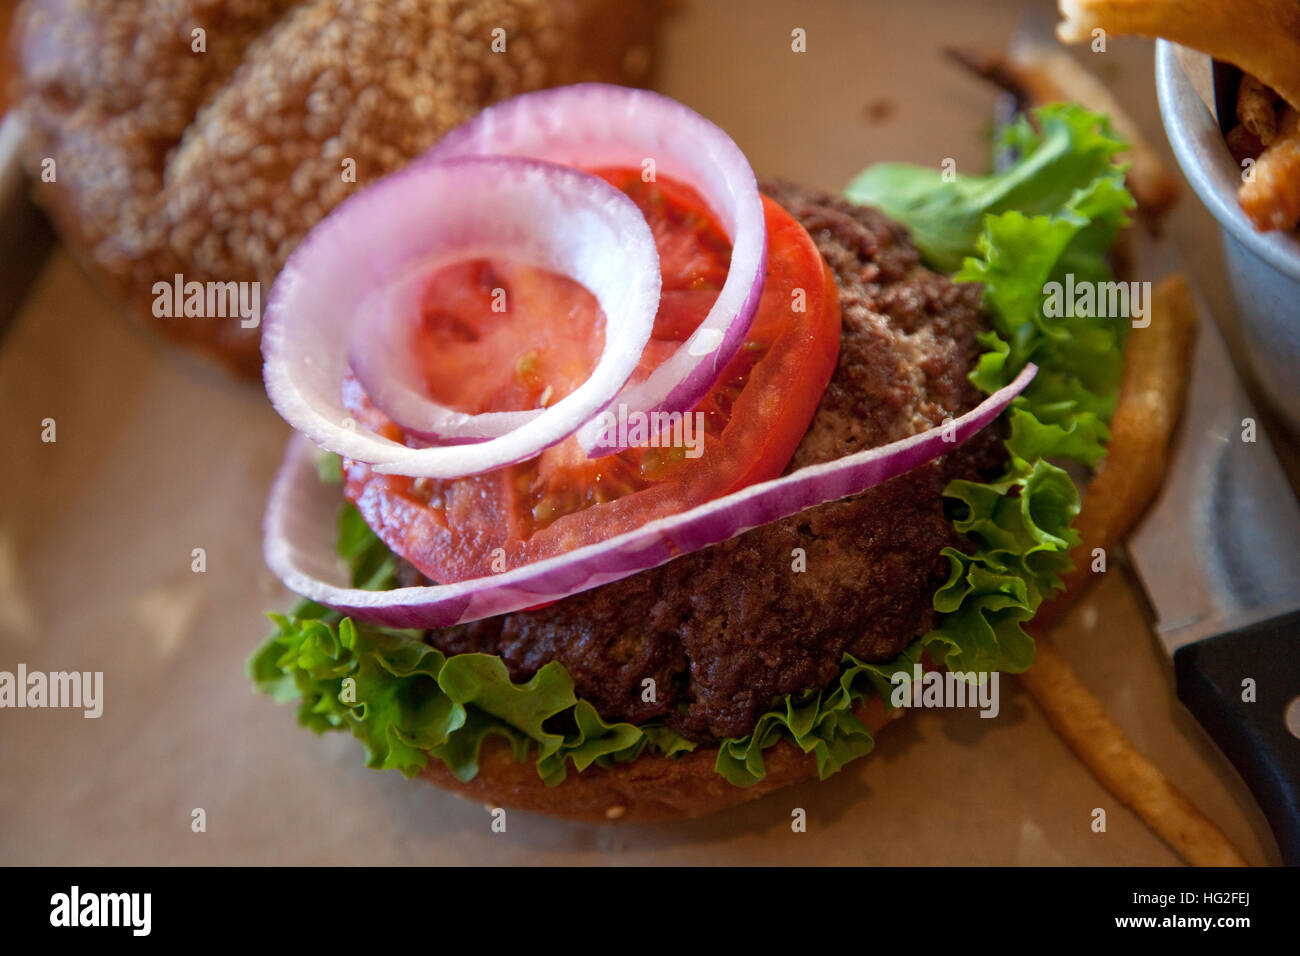 Delicious California Burger embellished with lettuce tomato and raw onion. St Paul Minnesota MN USA - Stock Image